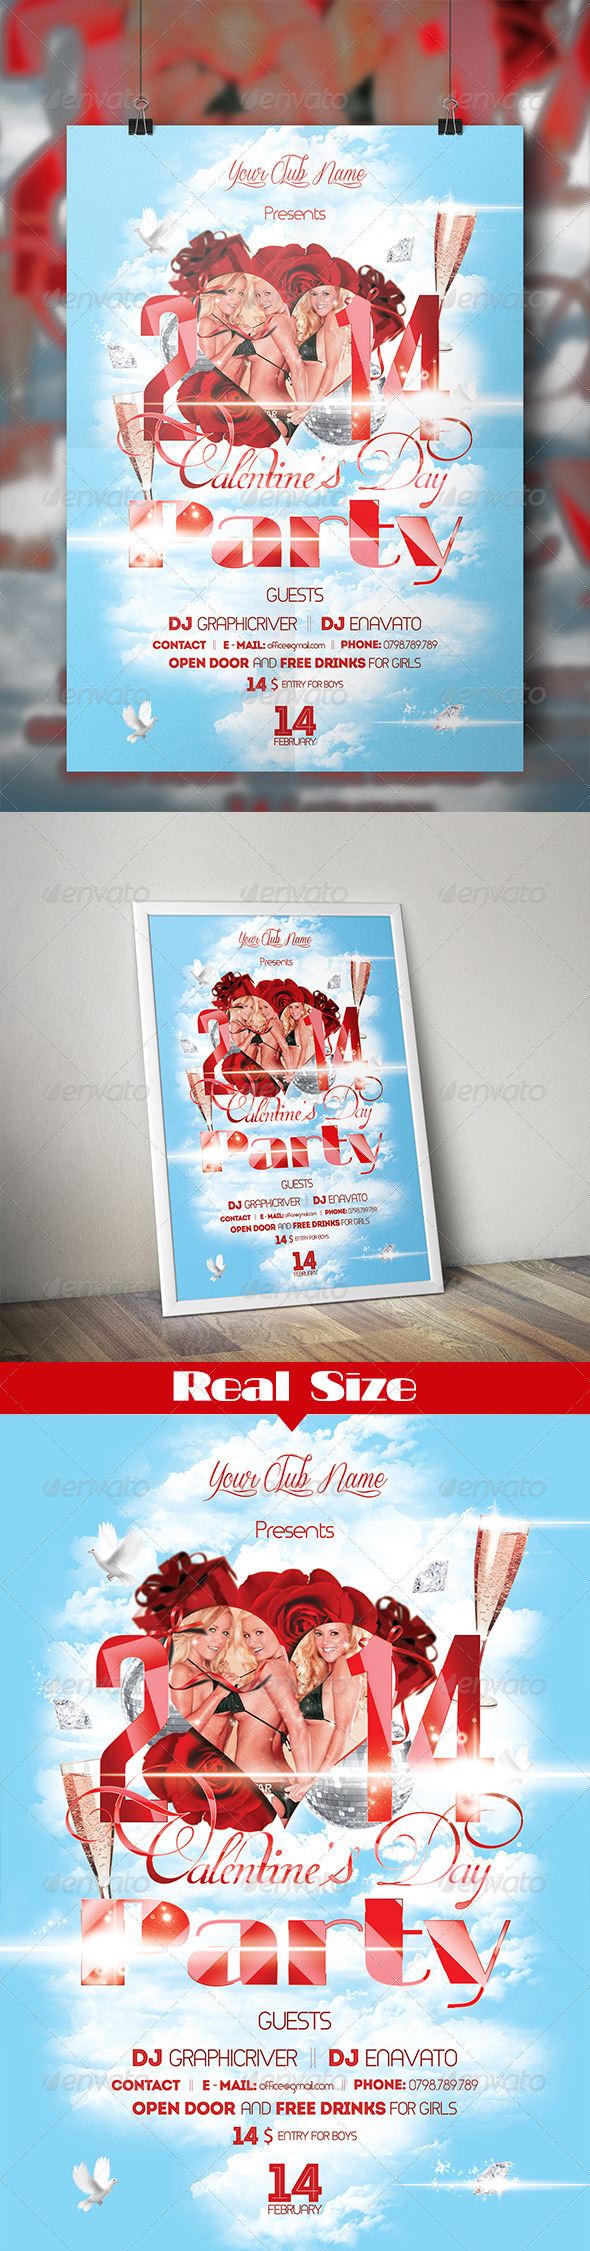 GraphicRiver Valentine s Day Party 6336684